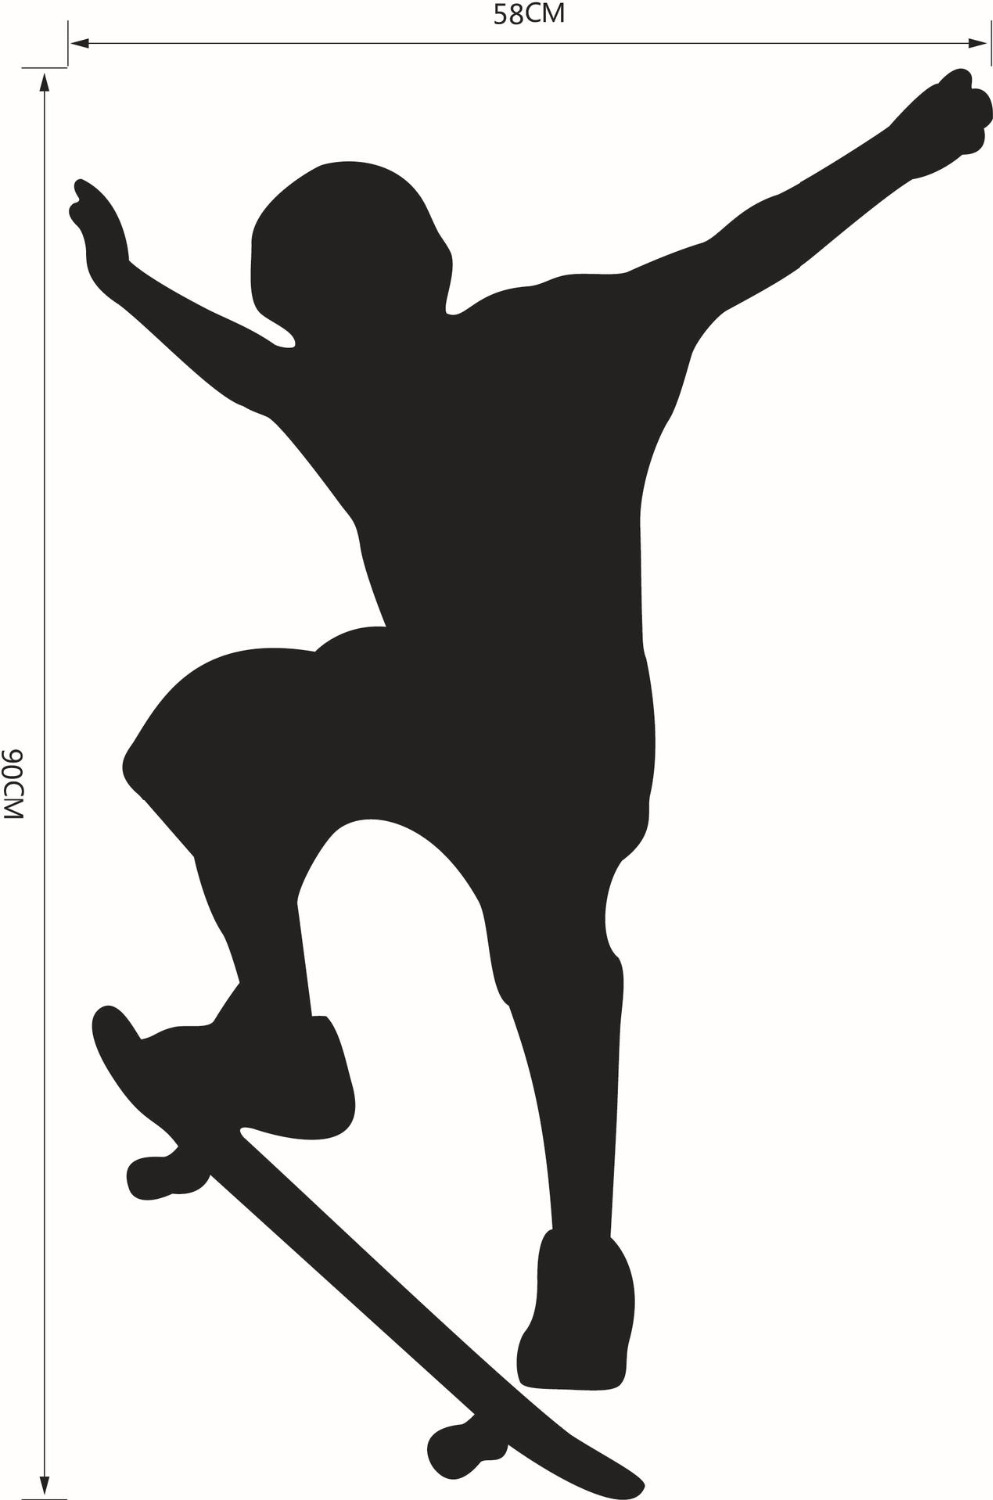 Aliexpress.com : Buy Skate sport X games maximal Wall Sticker.